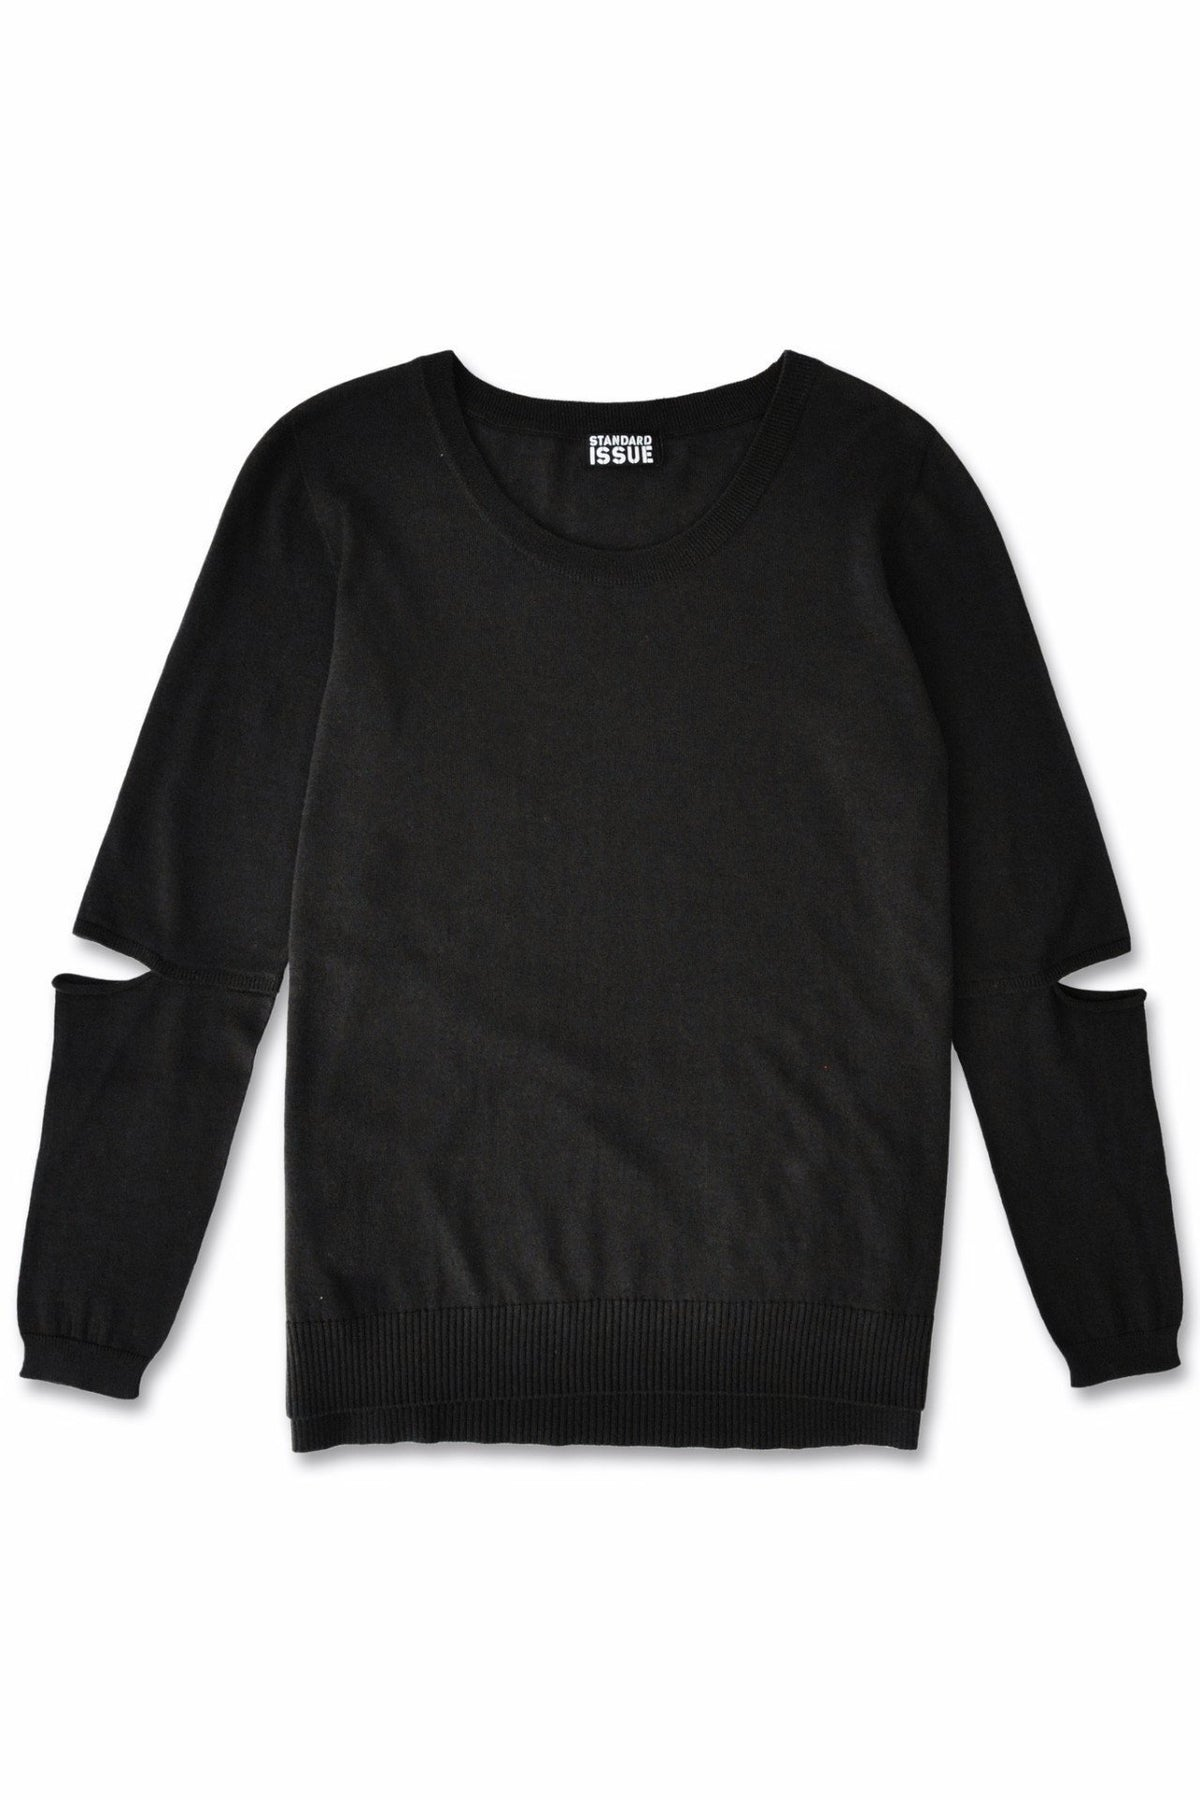 Standard Issue Split sleeve Sweater Knitwear Stockists Auckland Made in New Zealand NZ Designer Clothing